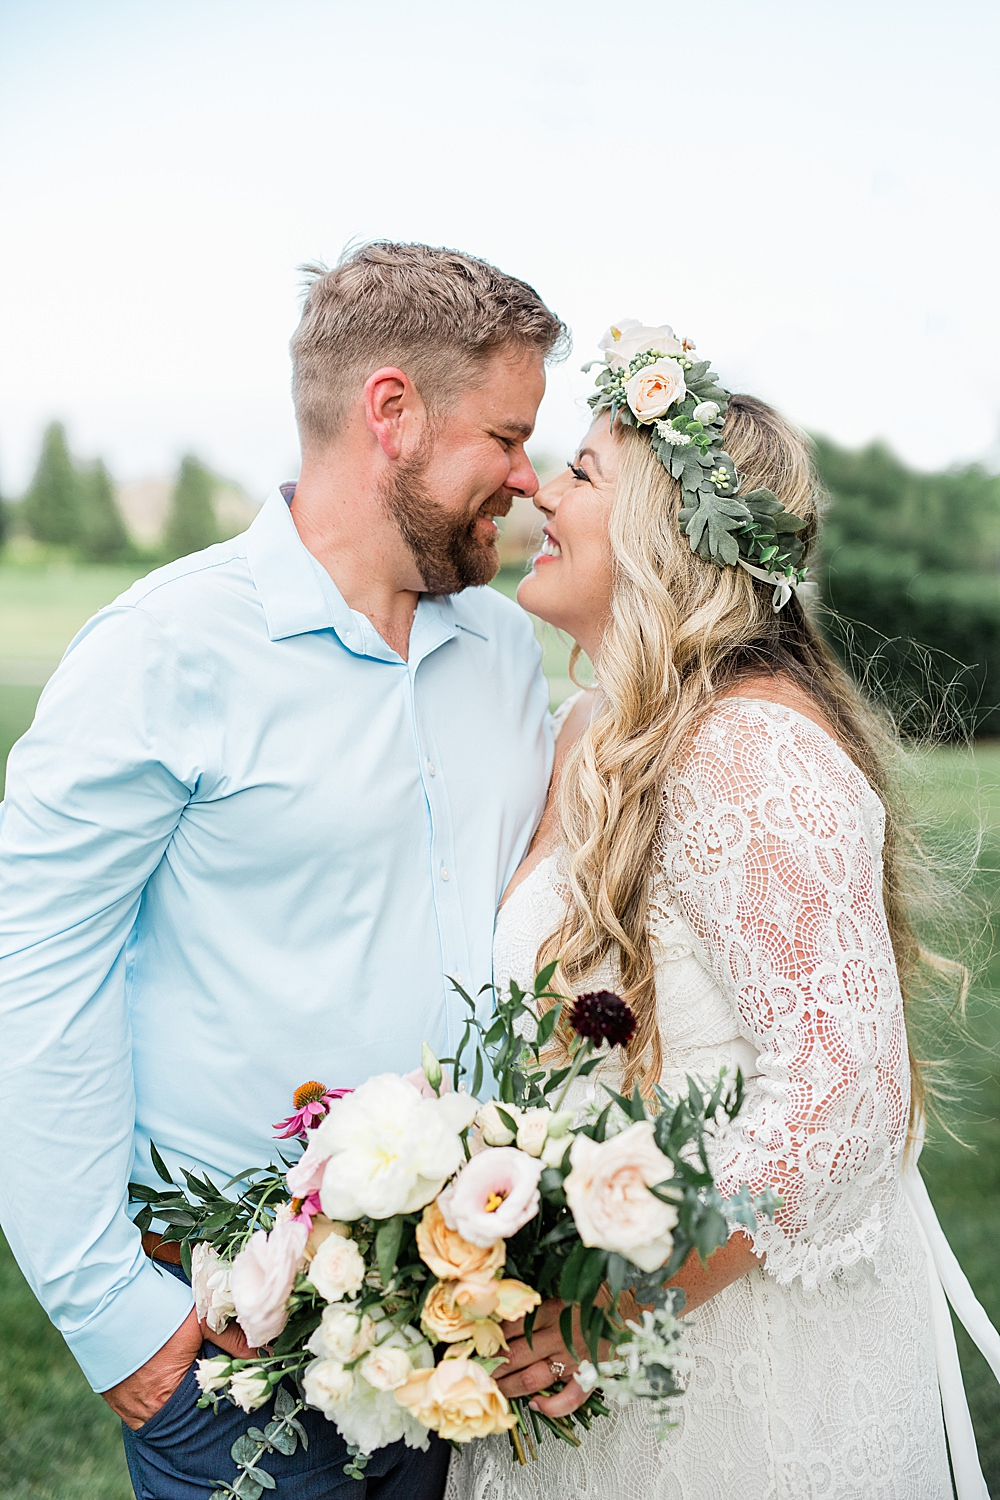 Nashville Wedding, Franklin Wedding, Nashville Wedding Photographer, Tennessee Wedding, Tennessee Wedding Photographer, Tennessee Wedding ideas, Vineyard Wedding, Vineyard Wedding Ideas, backyard wedding, backyard wedding inspiration, boho backyard wedding, casual wedding ideas,